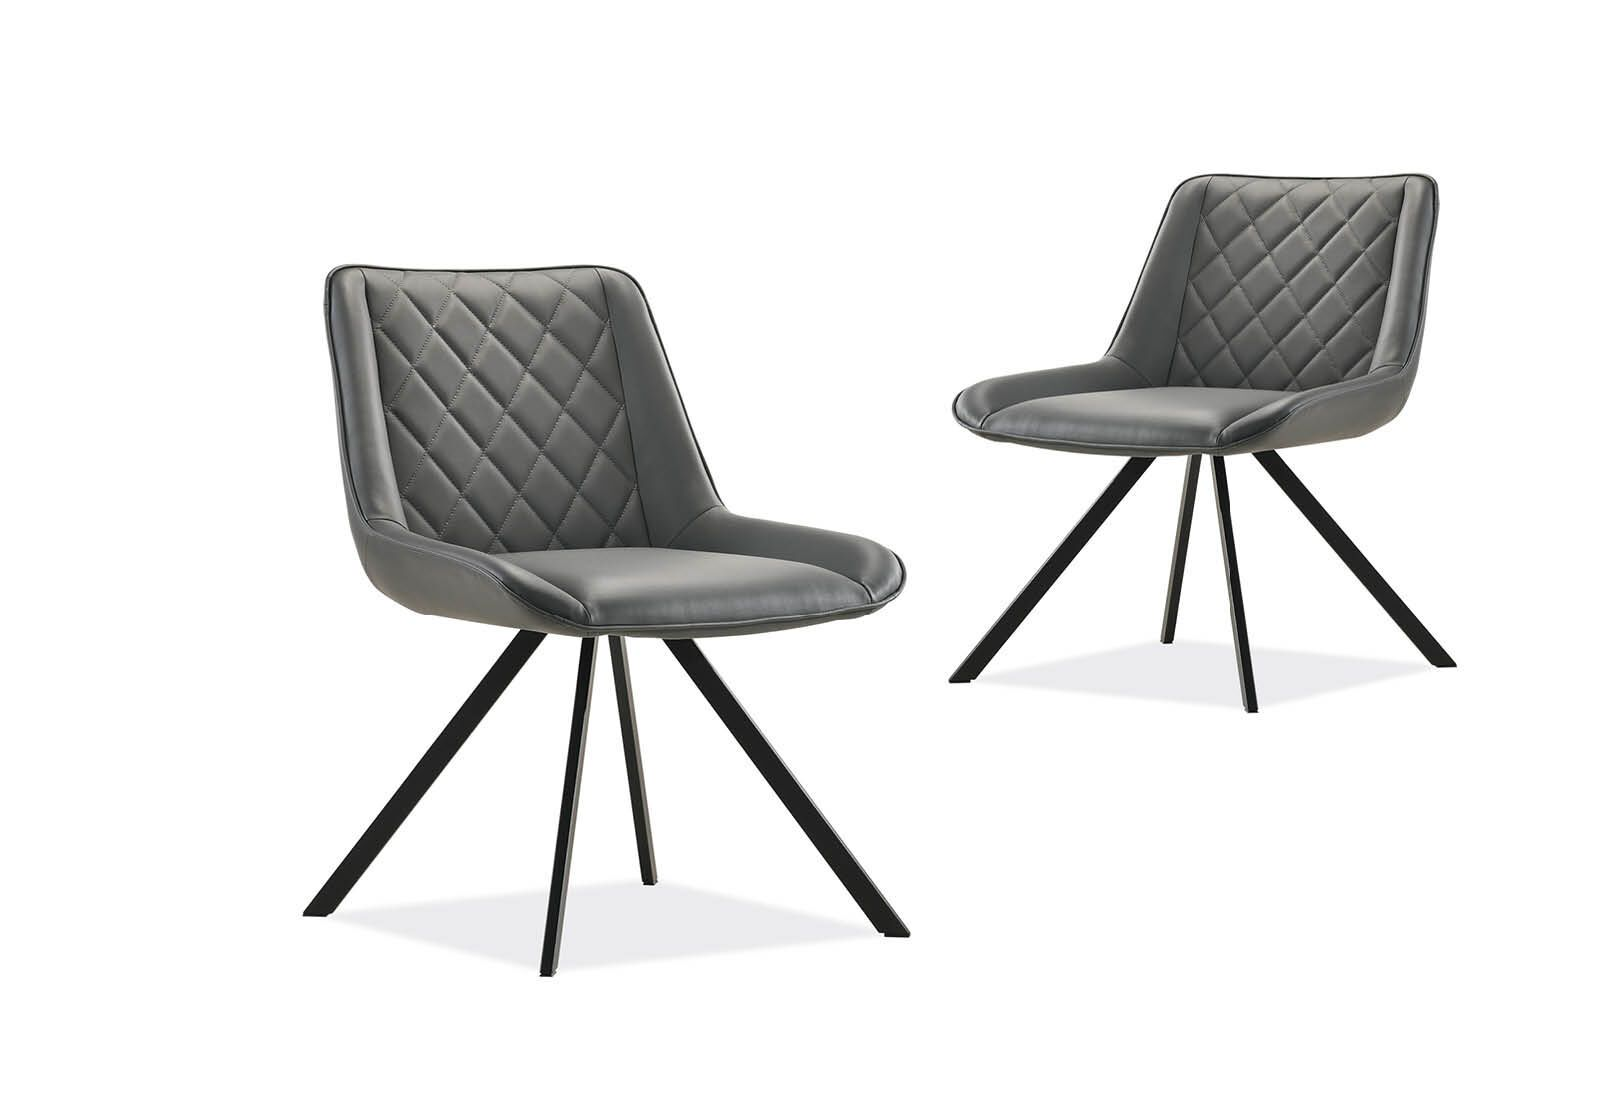 HEREFORD - Set of 2 Grey Dining Chairs by Amart Furniture ...